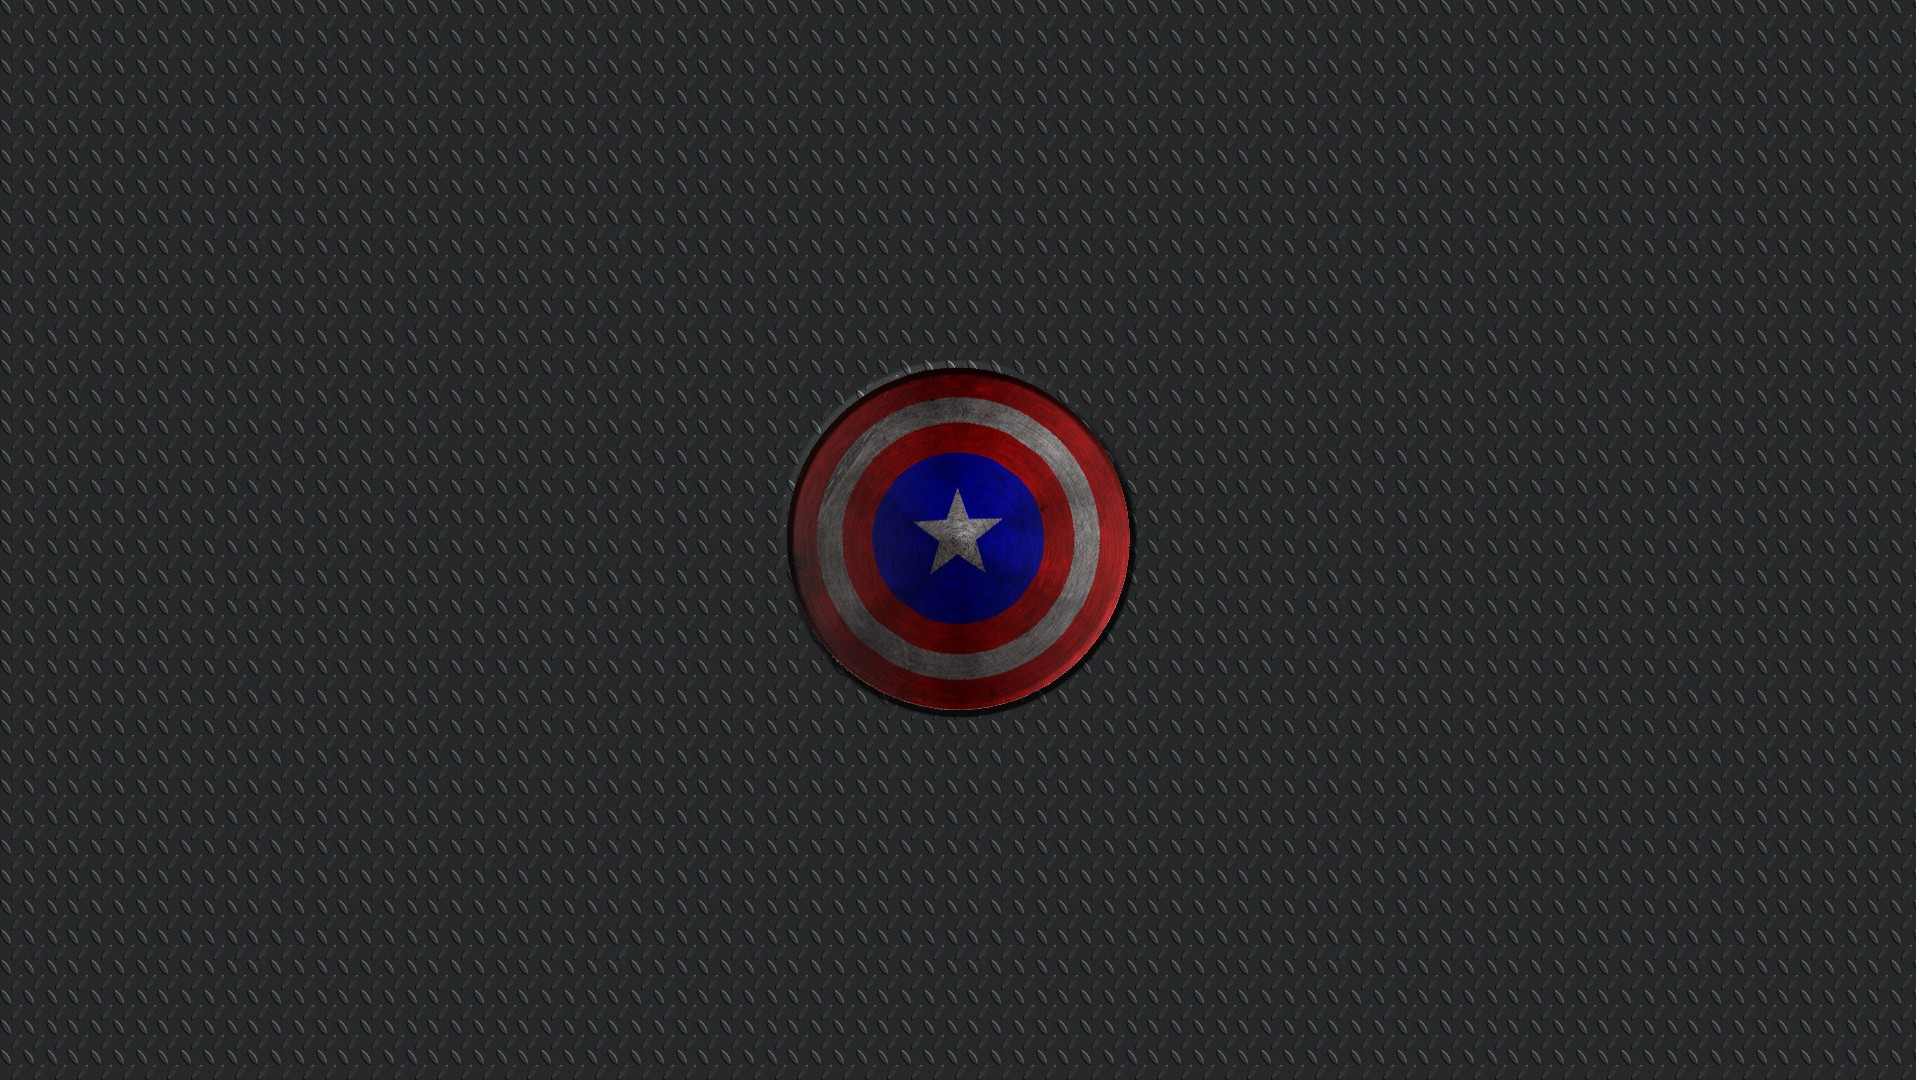 Captain America Shield Iphone Wallpaper Captain america wallpaper 1916x1080